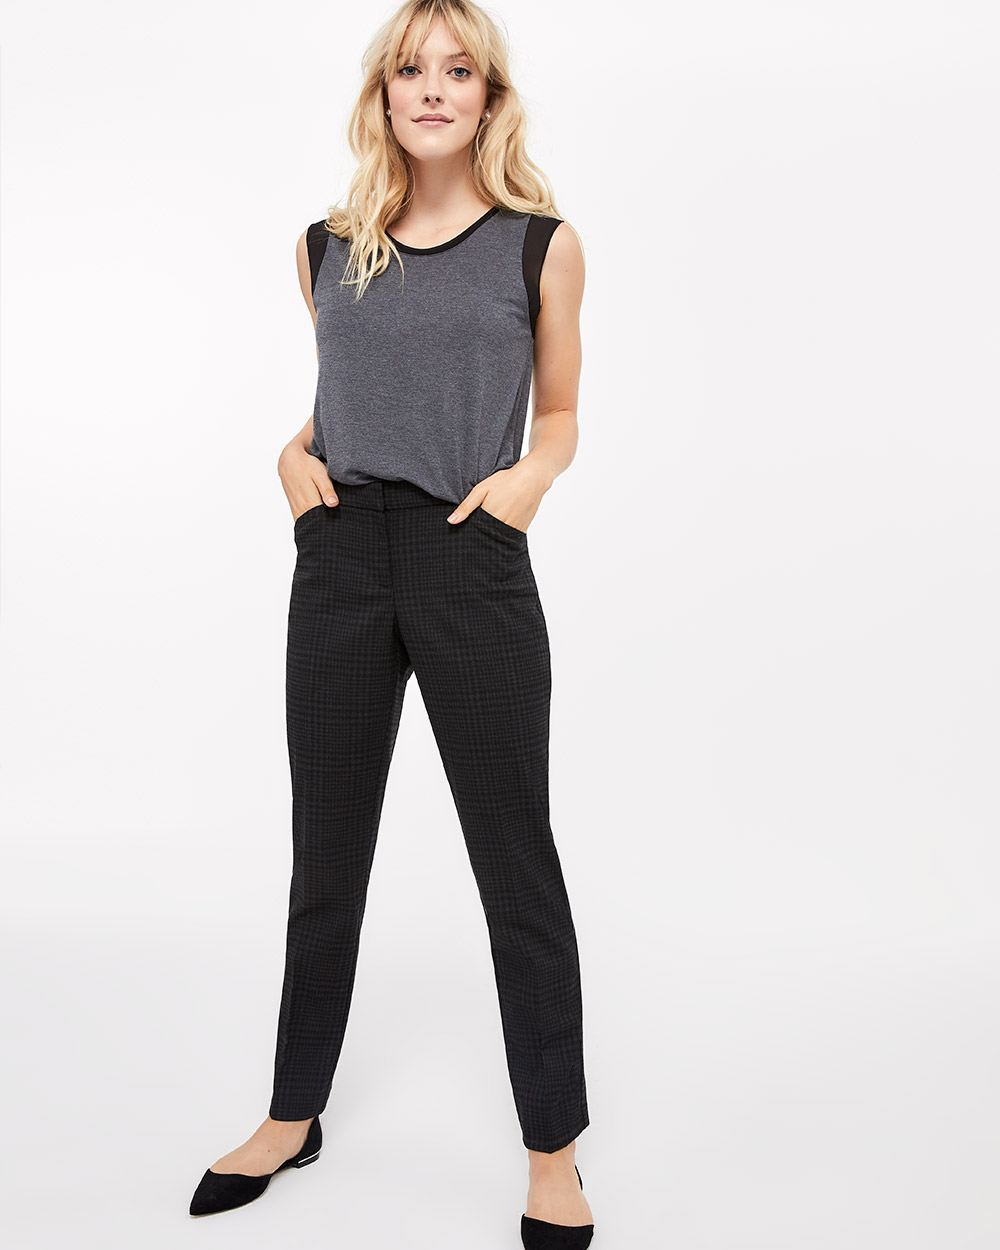 The Petite New Classic Straight Leg Printed Pants